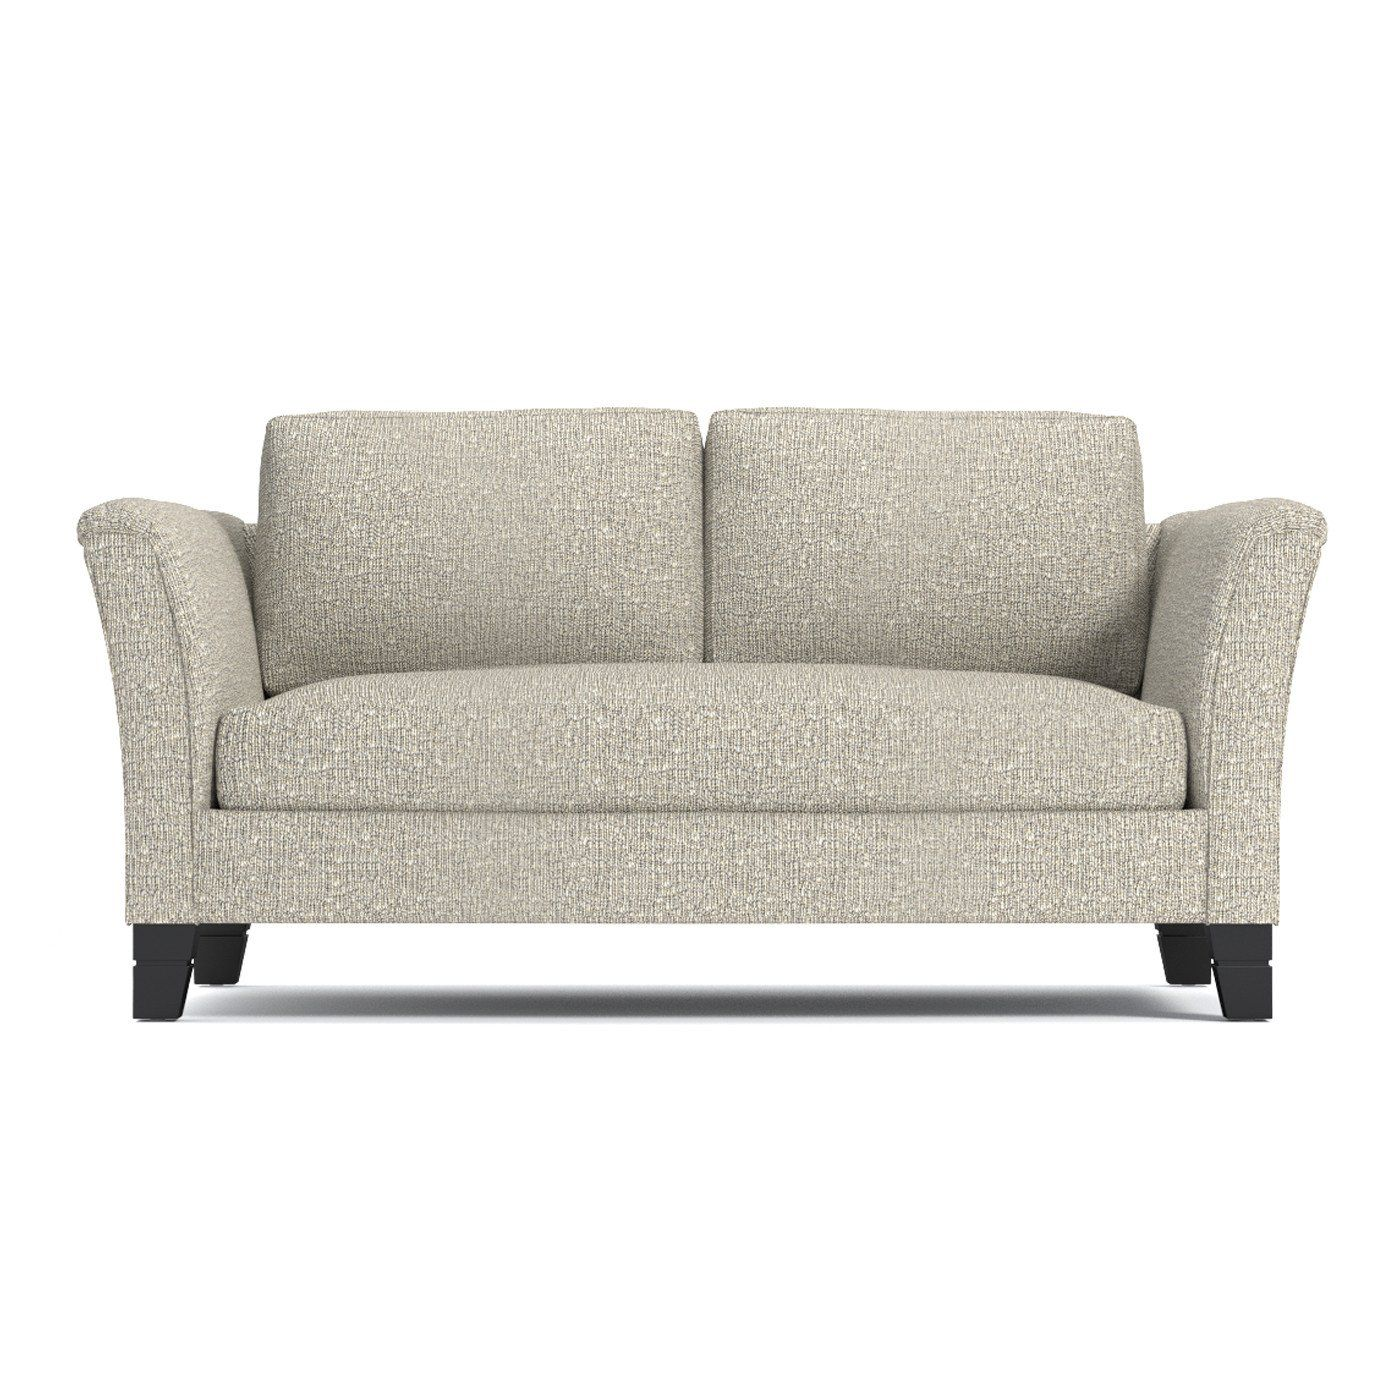 Desoto Apartment Size Sofa Leg Finish Pecan Size Apartment